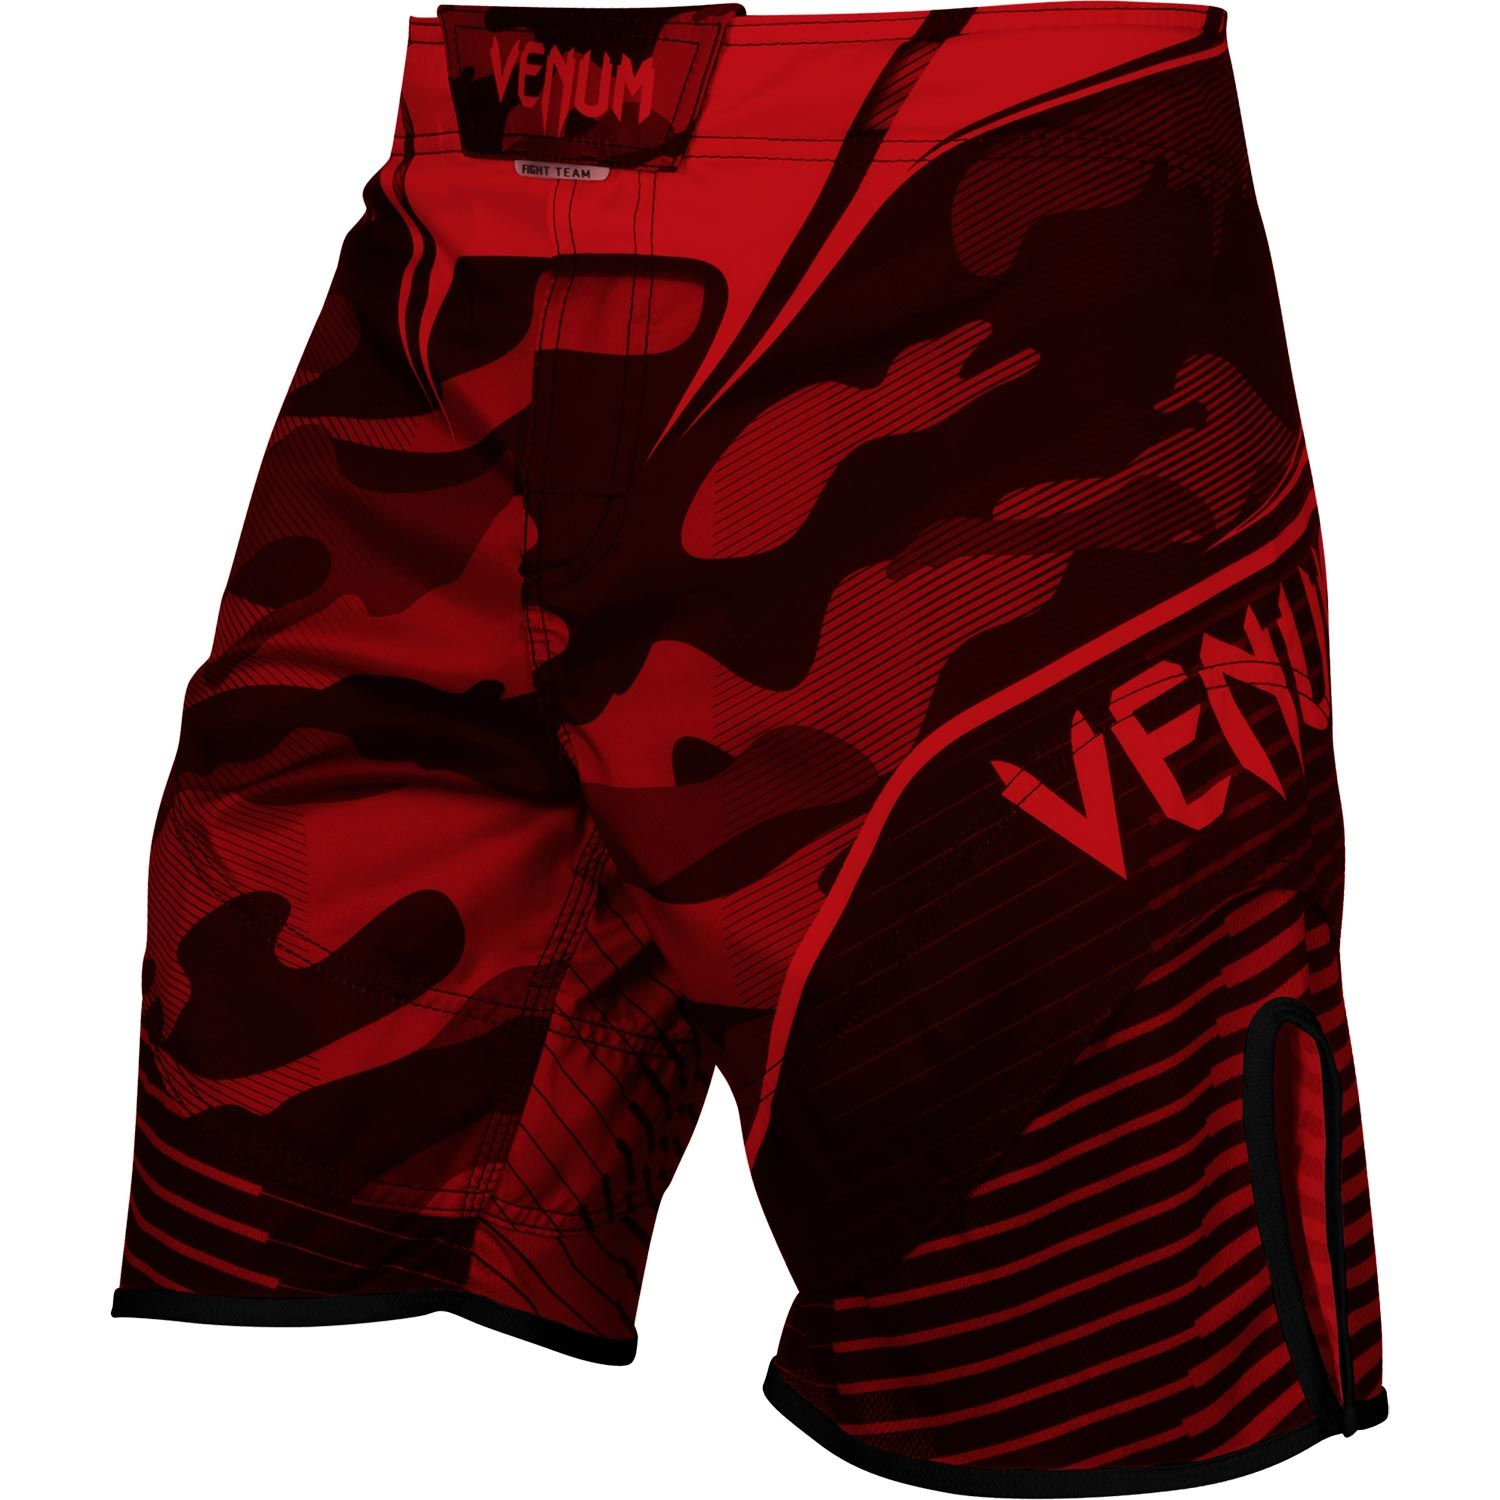 ШОРТЫ VENUM CAMO HERO - Red/Black